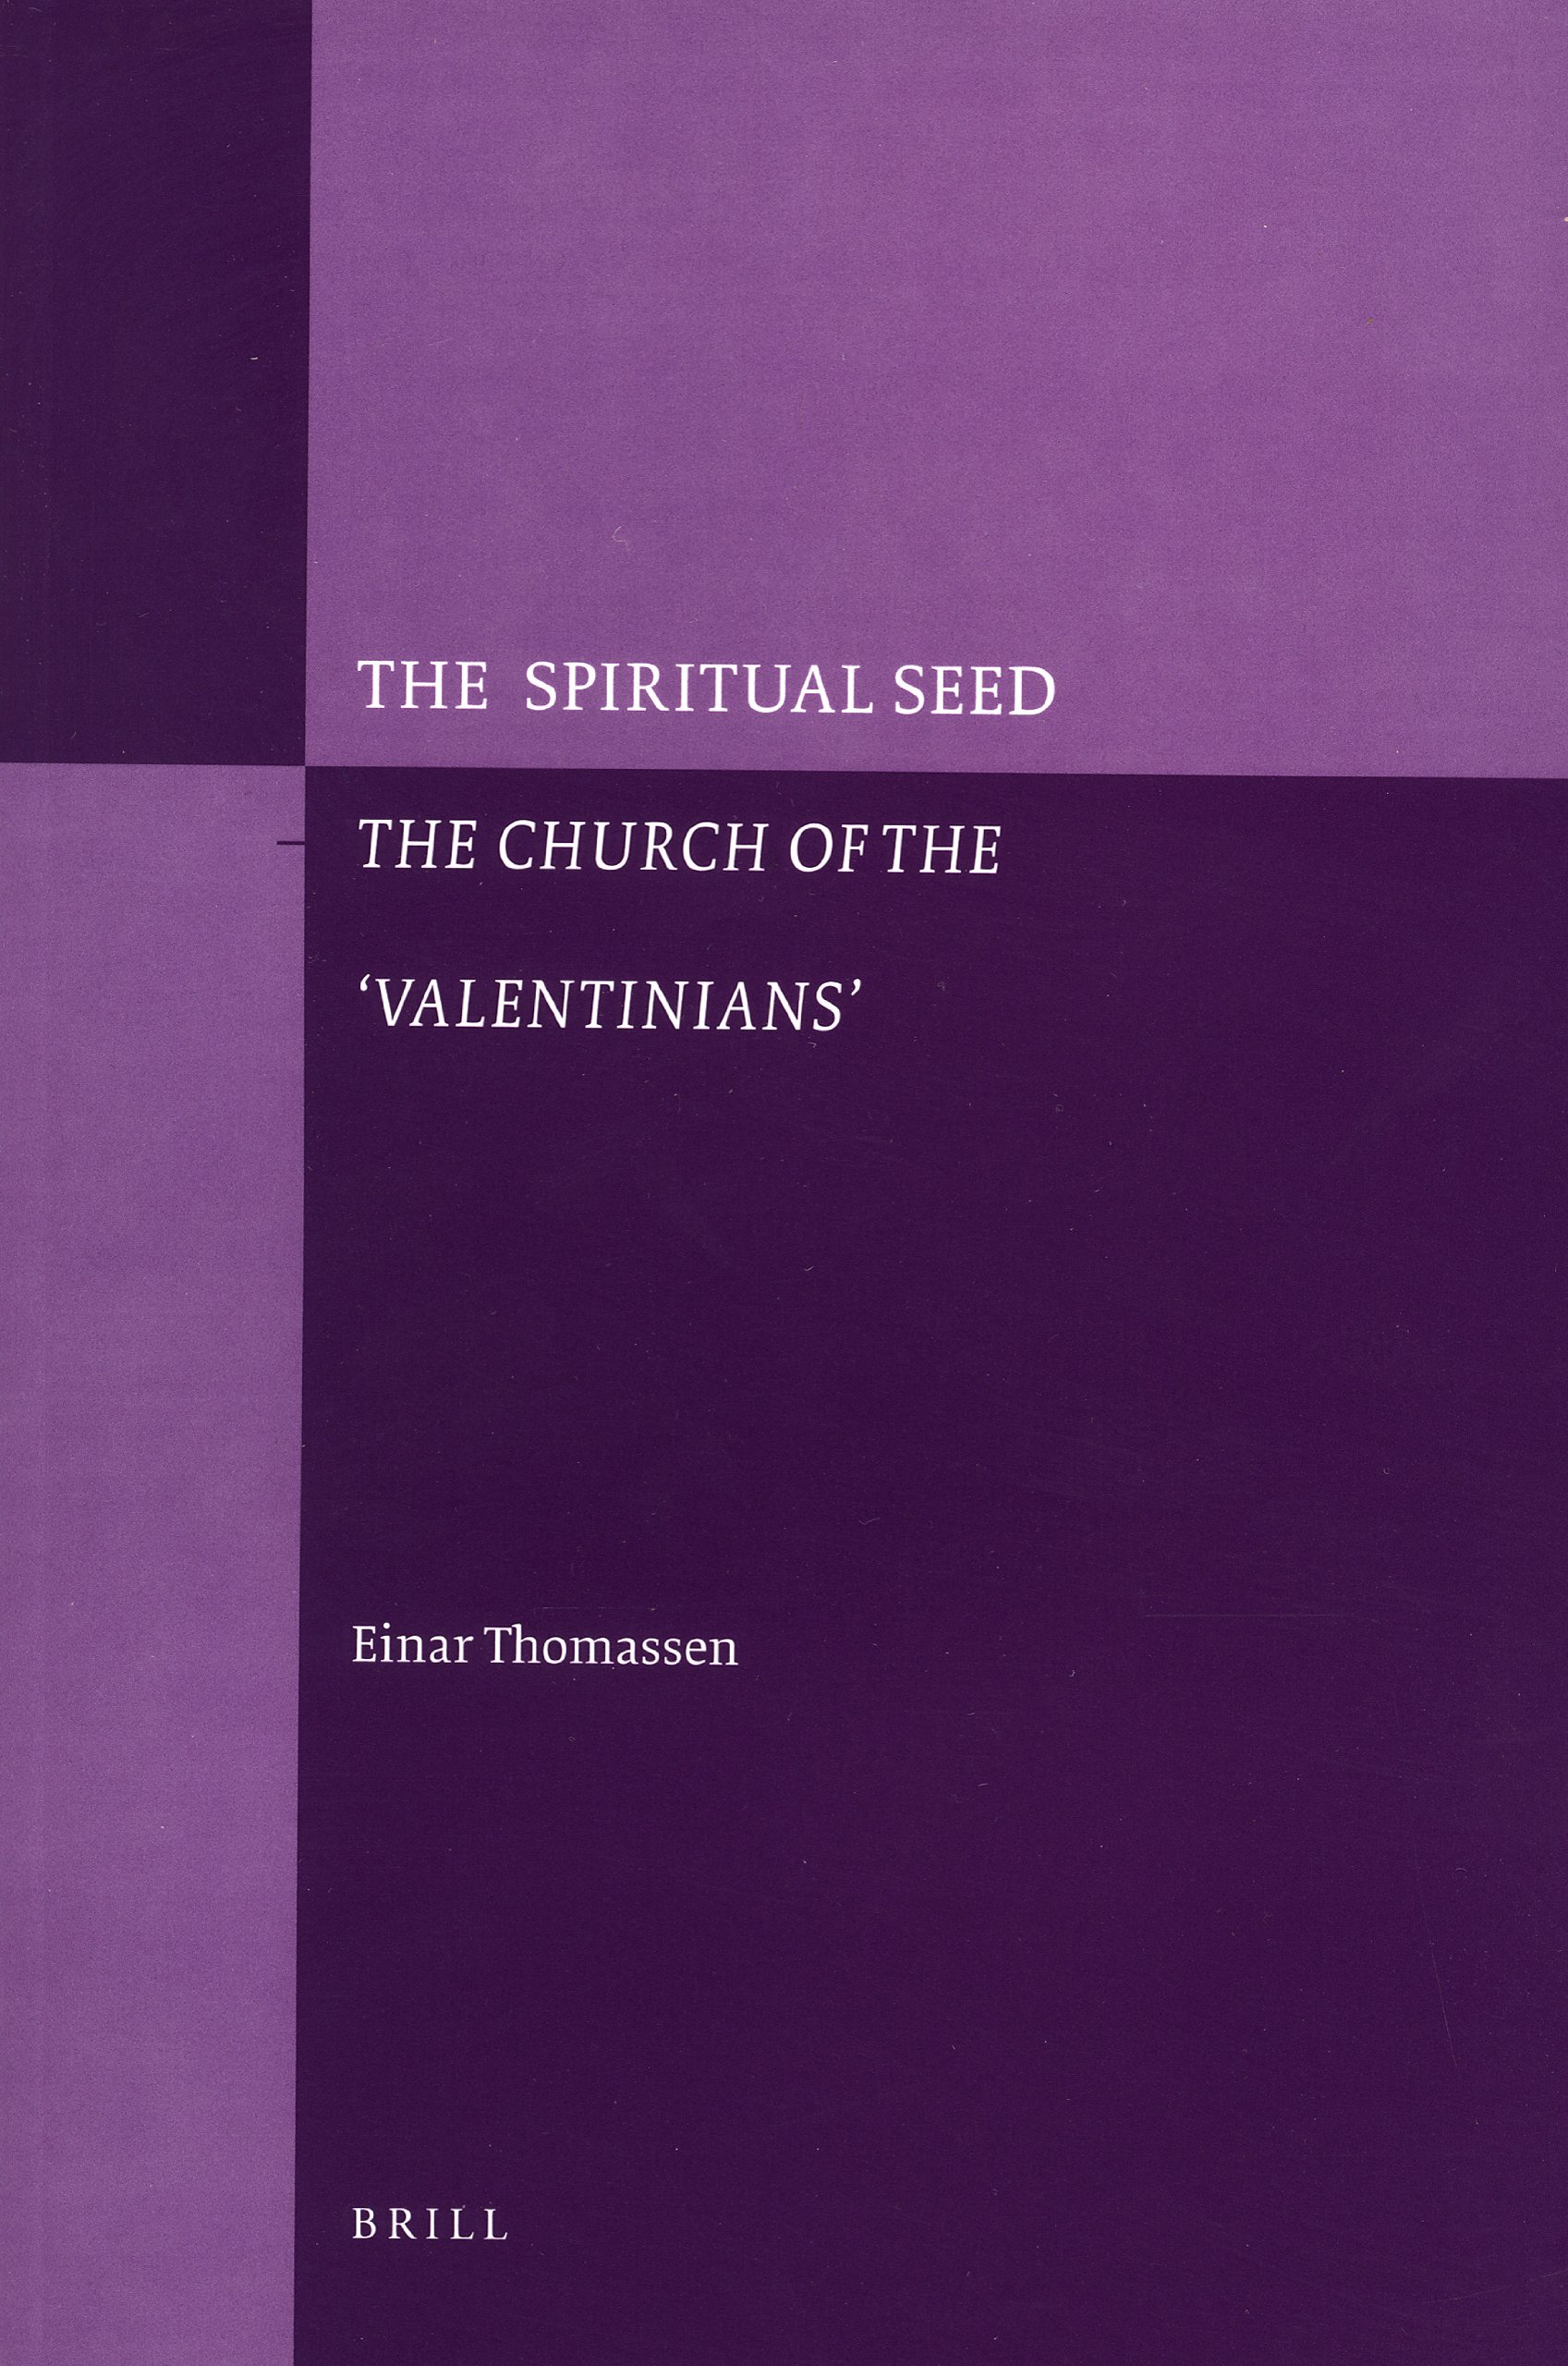 The Spiritual Seed - The Church of the 'valentinians' (Paperback) by Brill